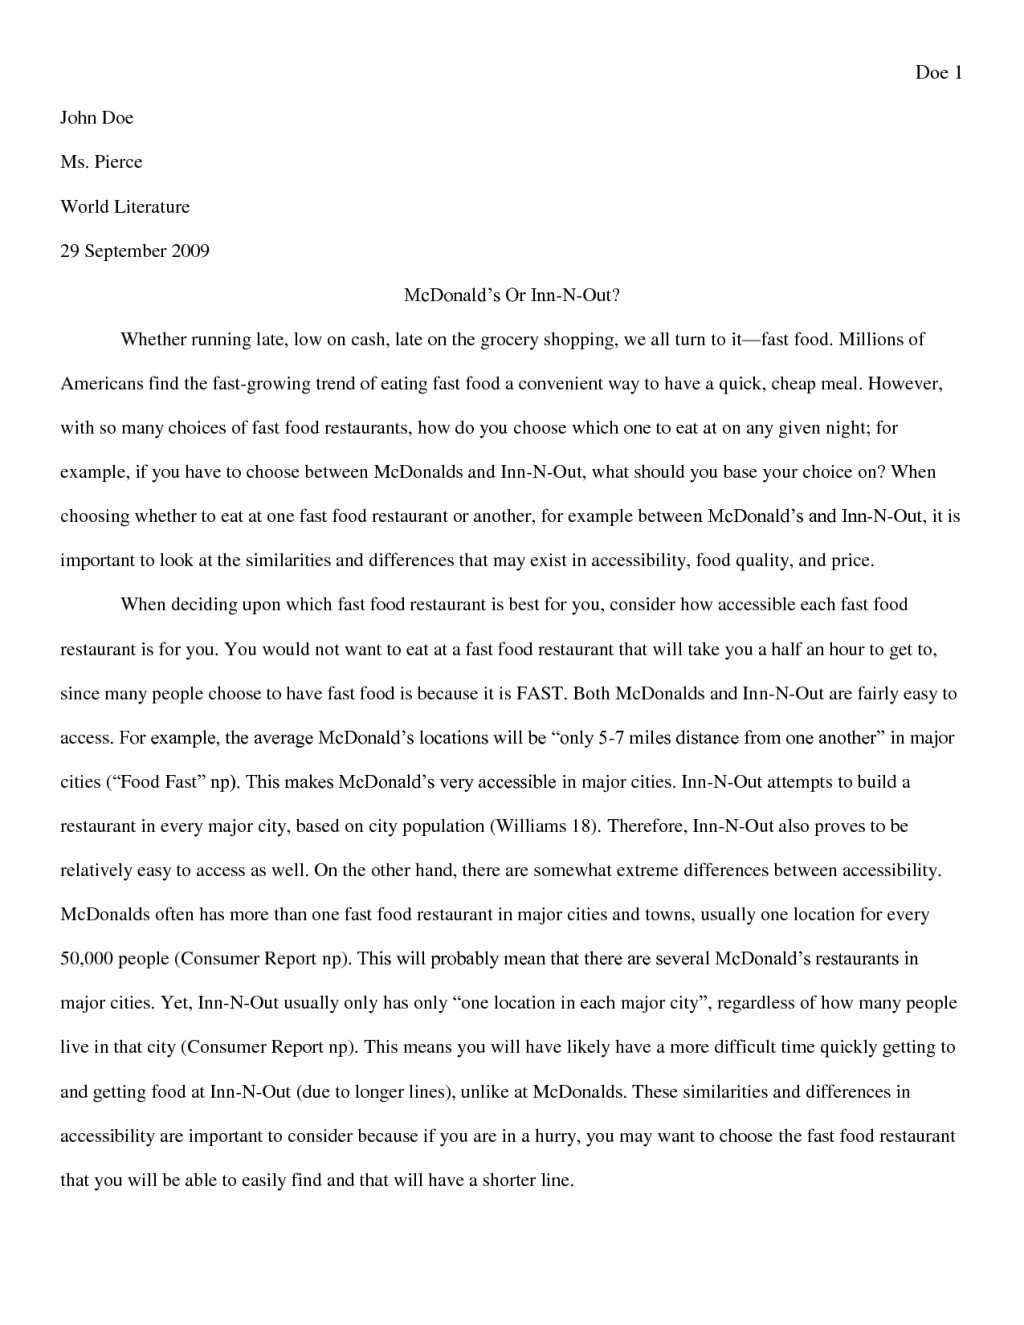 006 Essay Graduating High School Graduation Narrative Example Resume Review Services Vancouver Community Service Sample On From Day In Rare Ceremony Large